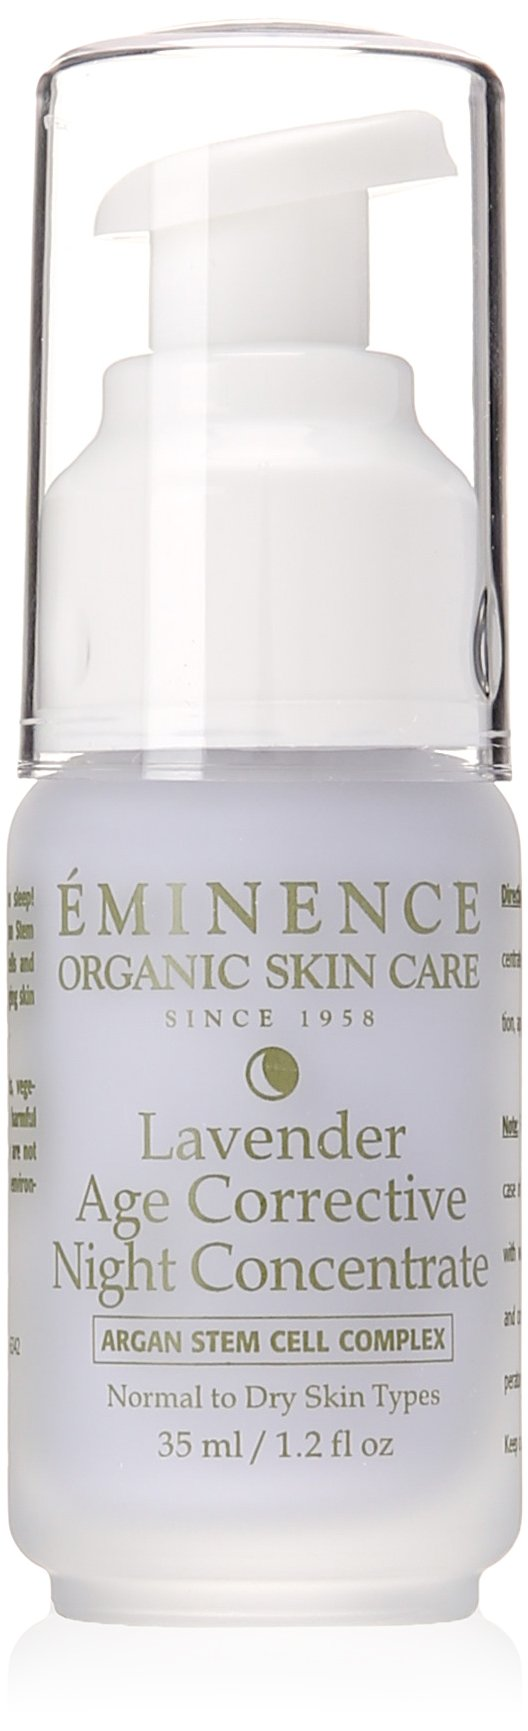 Eminence Lavender Age Corrective Night Concentrate, 1.2 Ounce